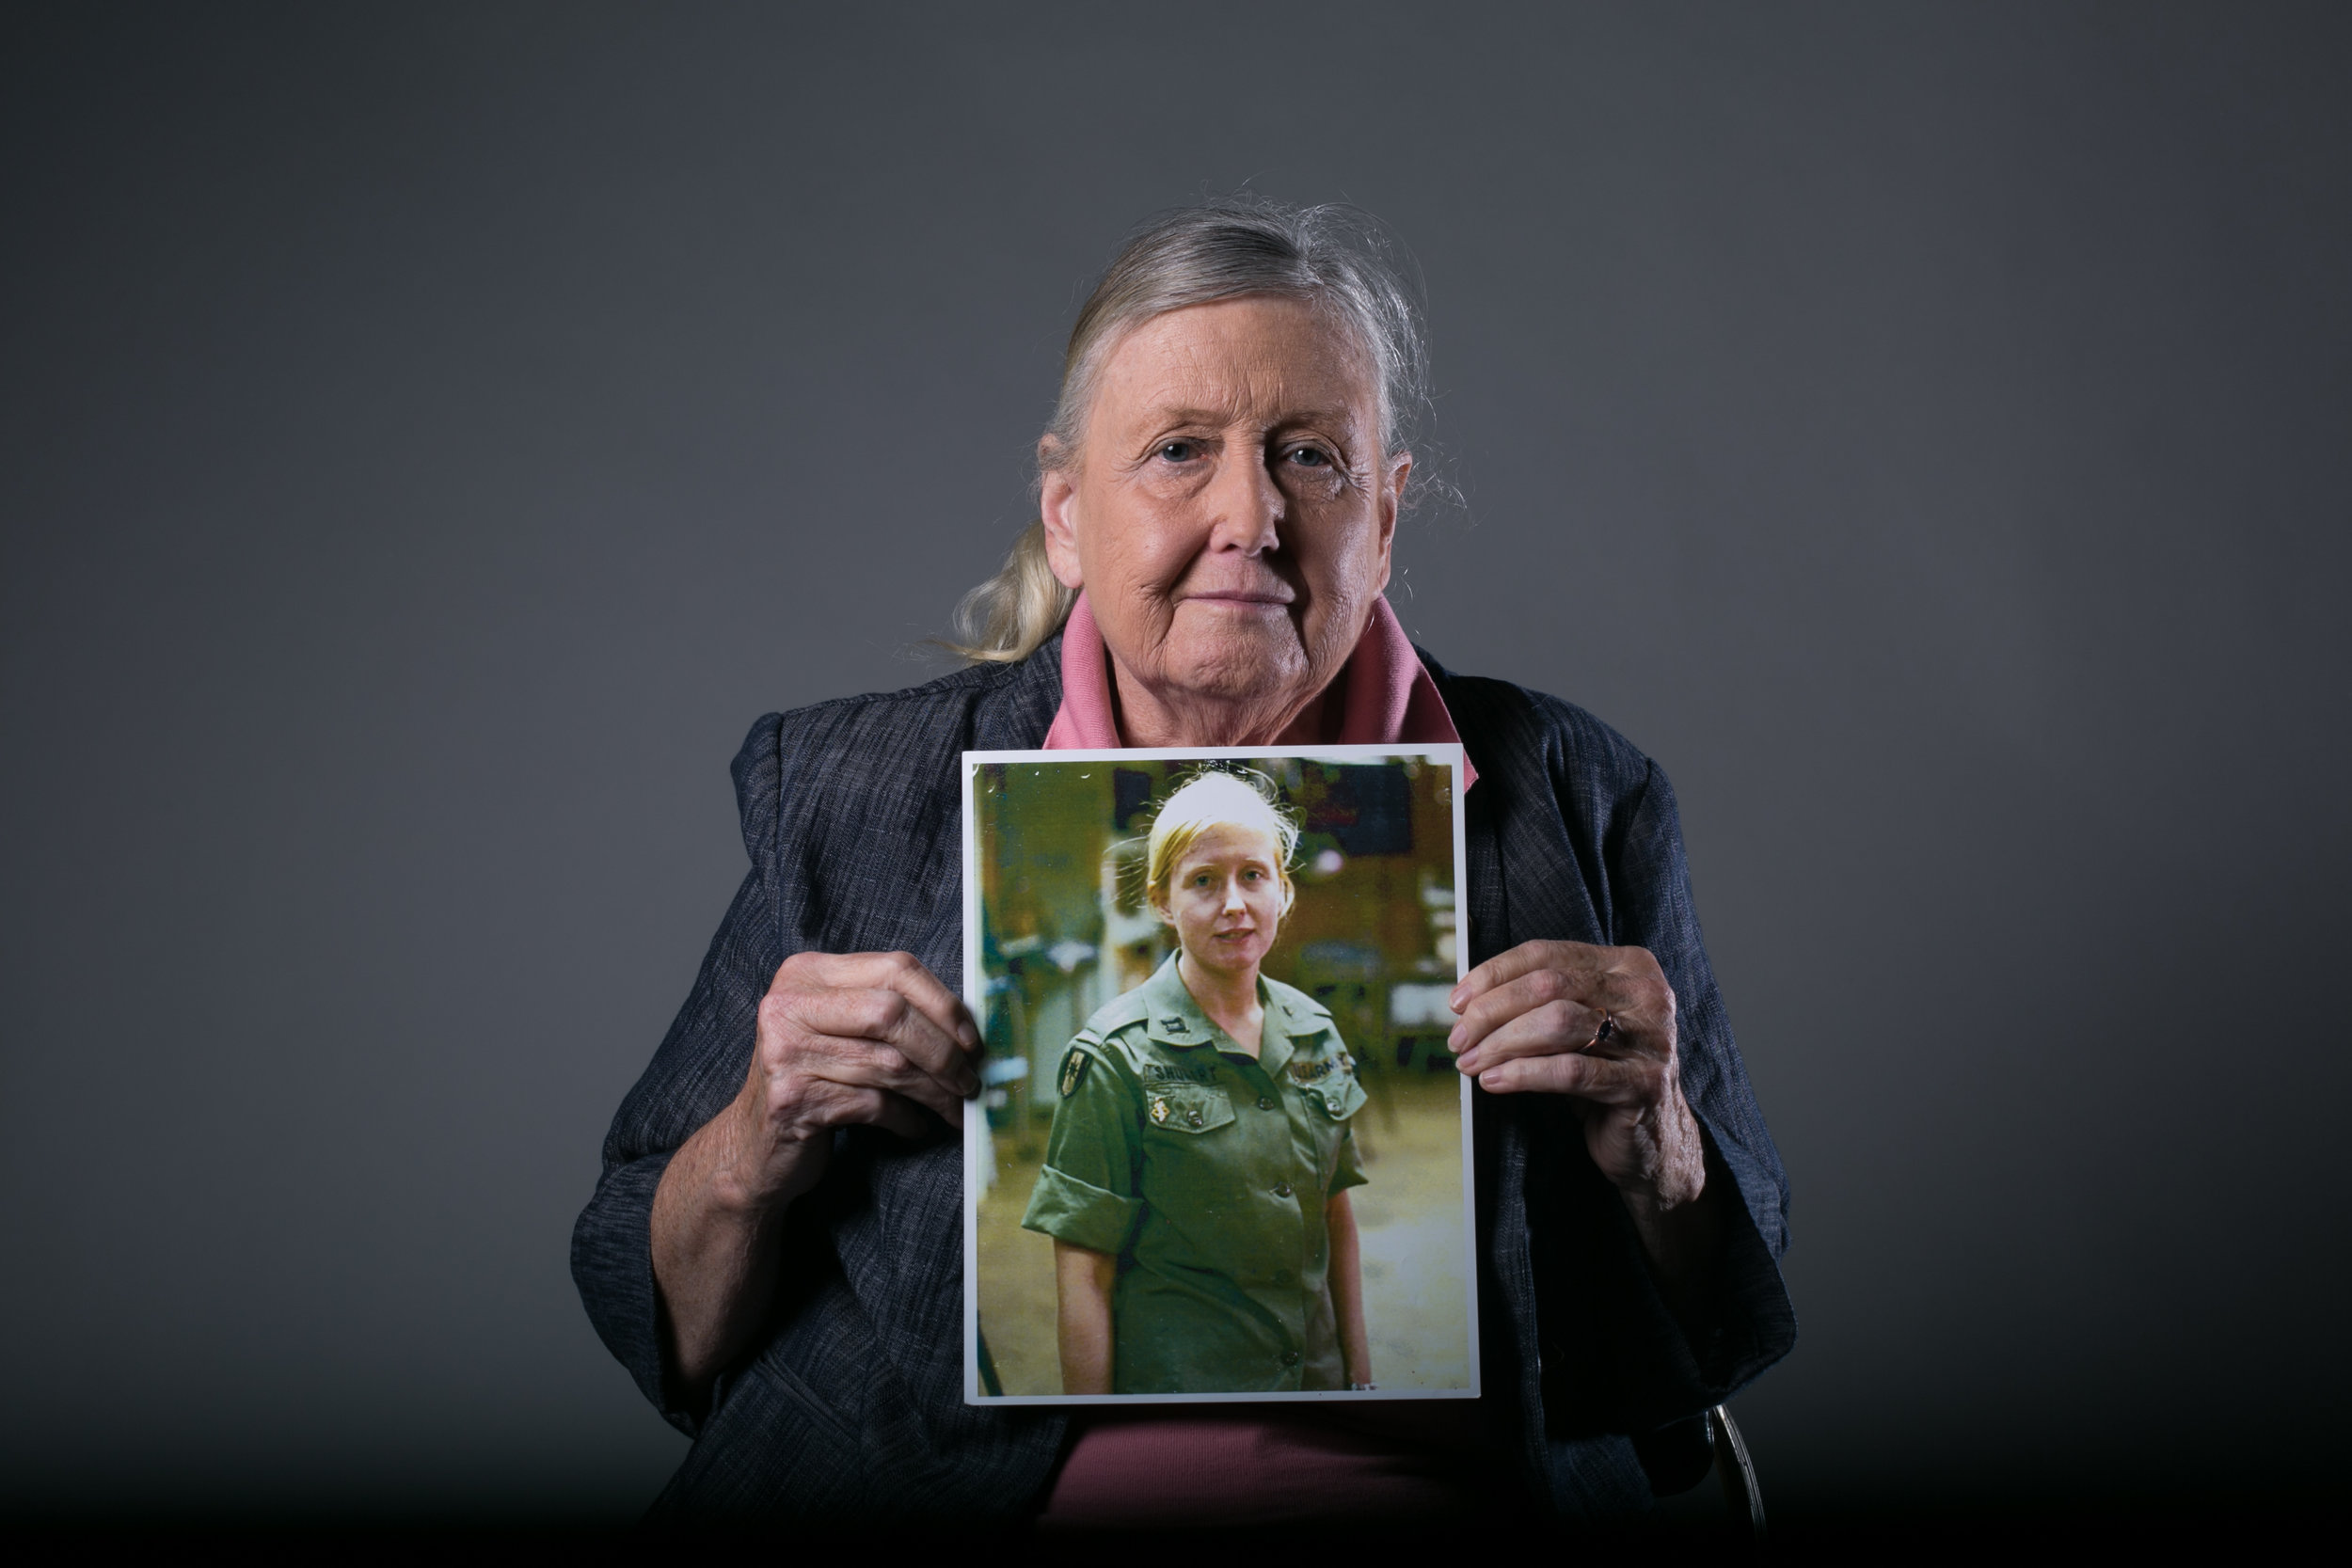 Mary Ellen Shugart of the Army Nurse Corps, holds a picture of herself from her time as a nurse in Vietnam.